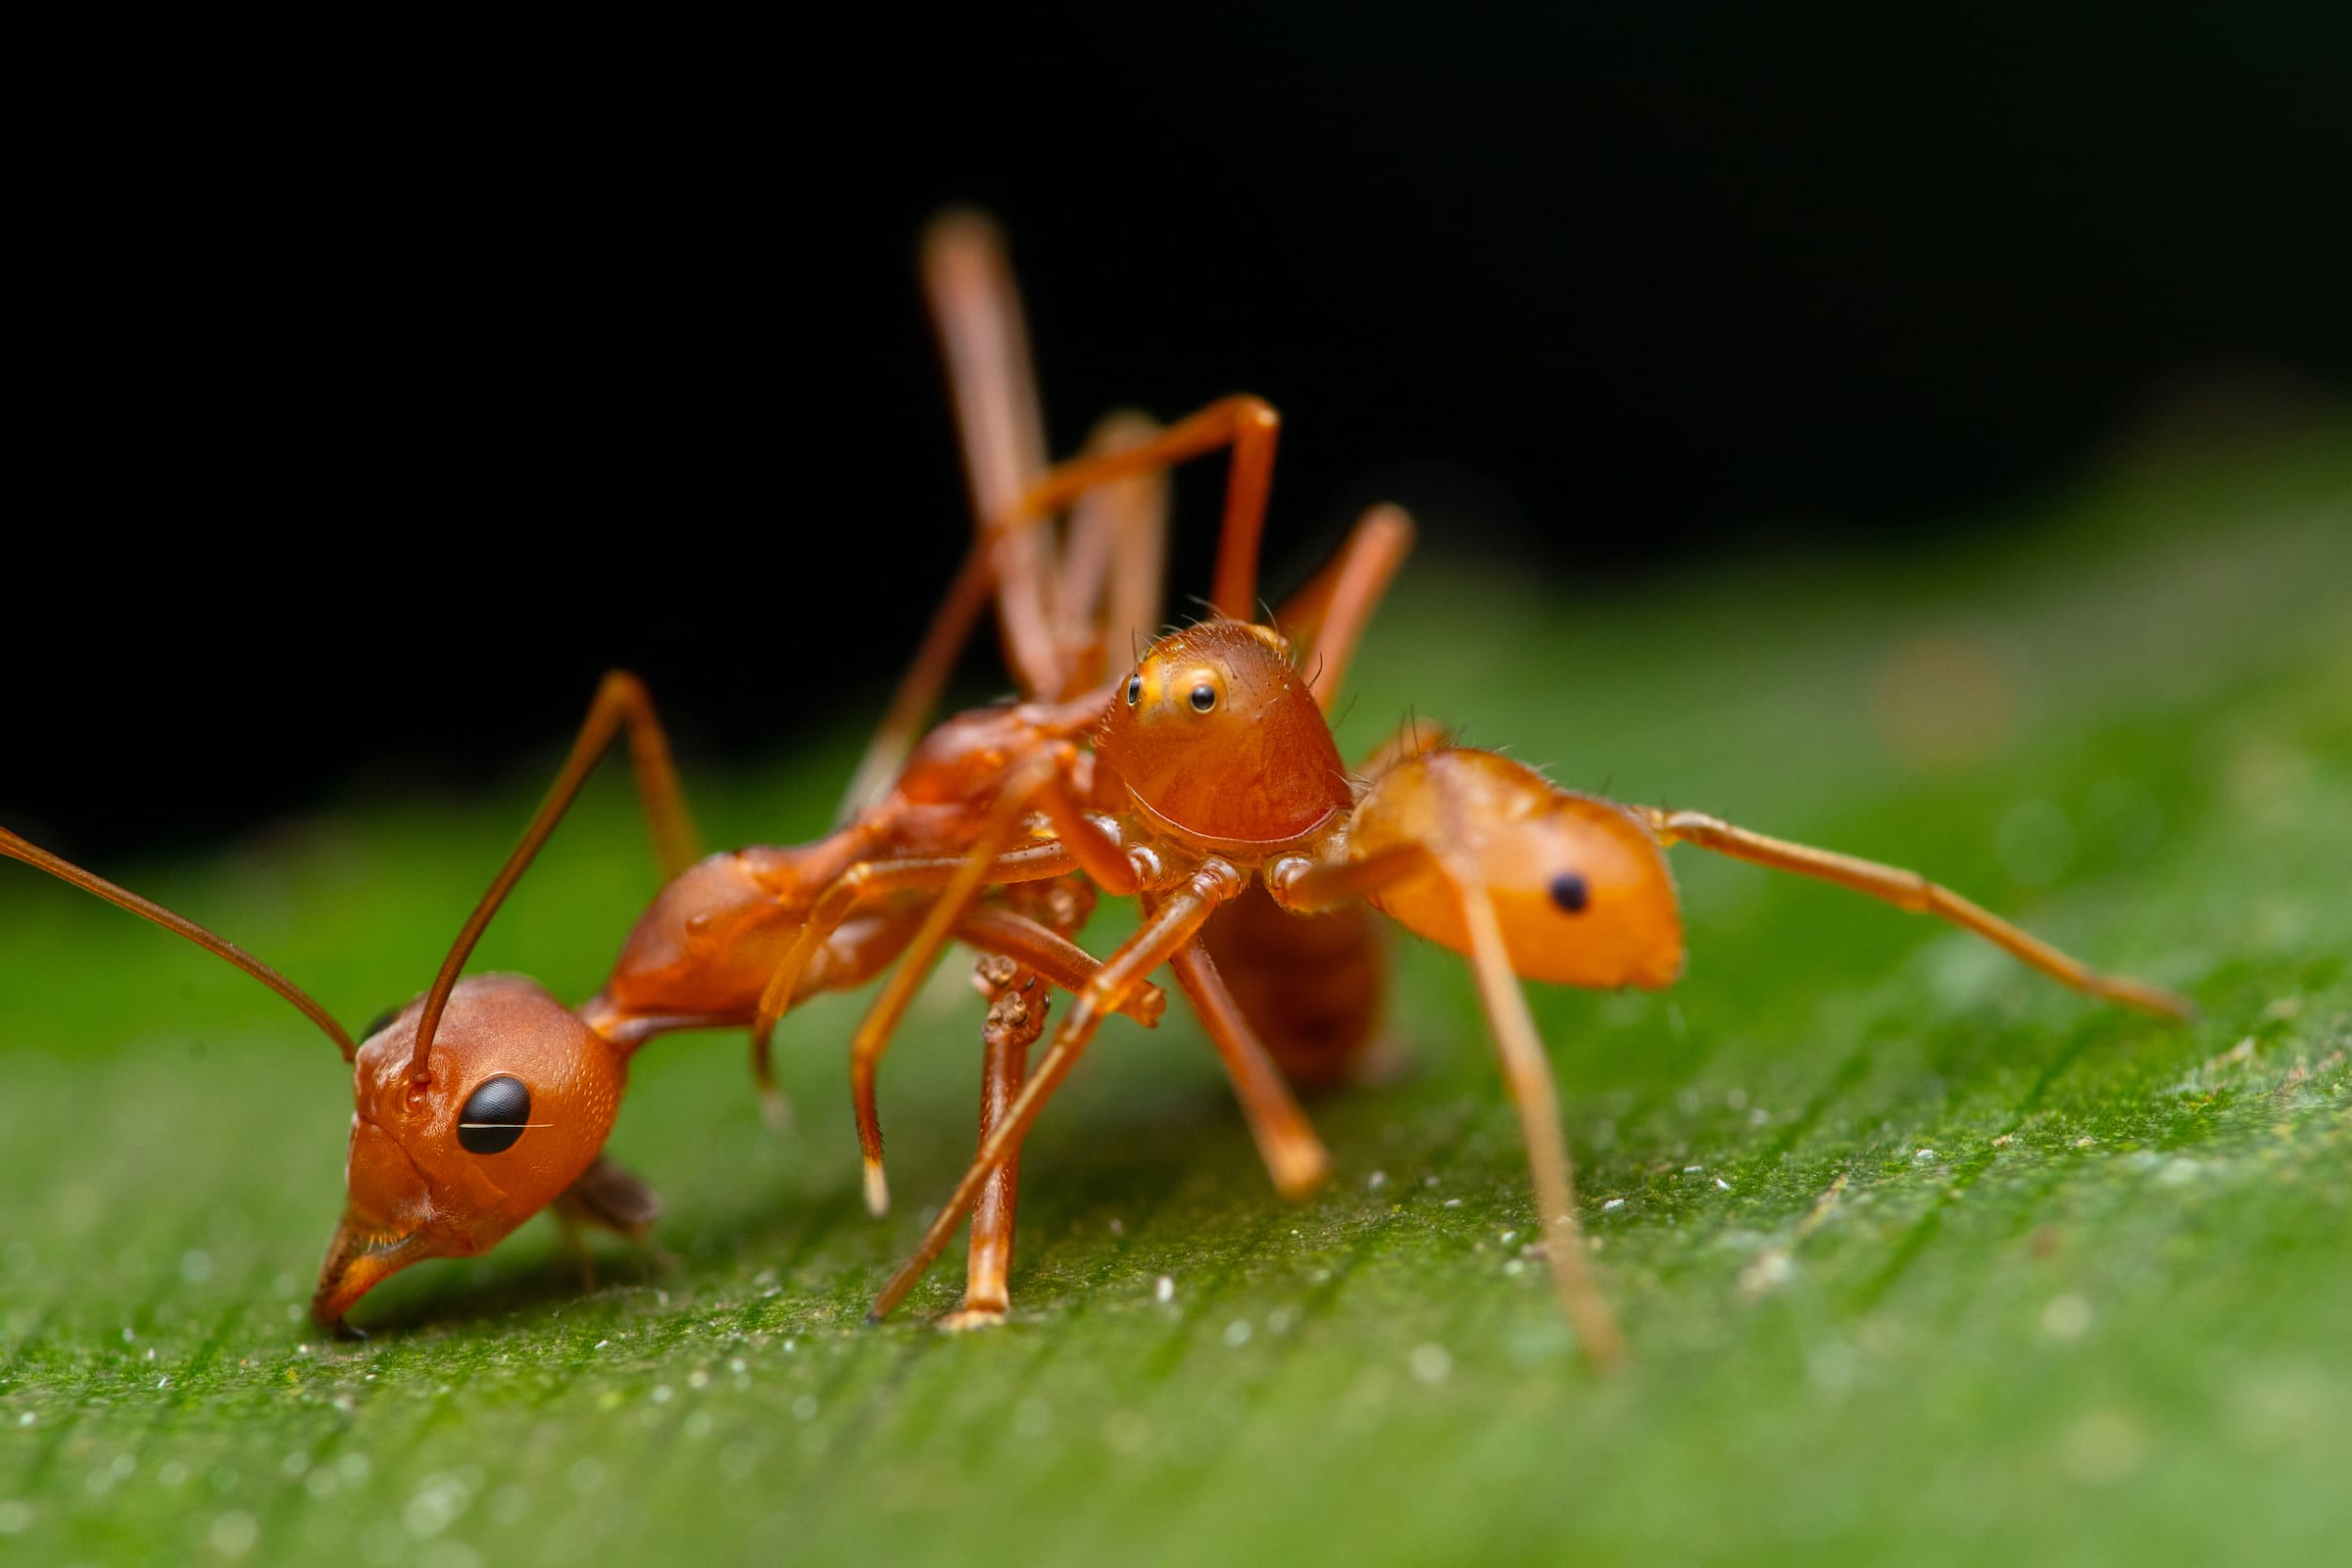 The Amyciaea spider takes an envenomated ant onto a nearby leaf and consumes it.  Photo: Jithesh Pai